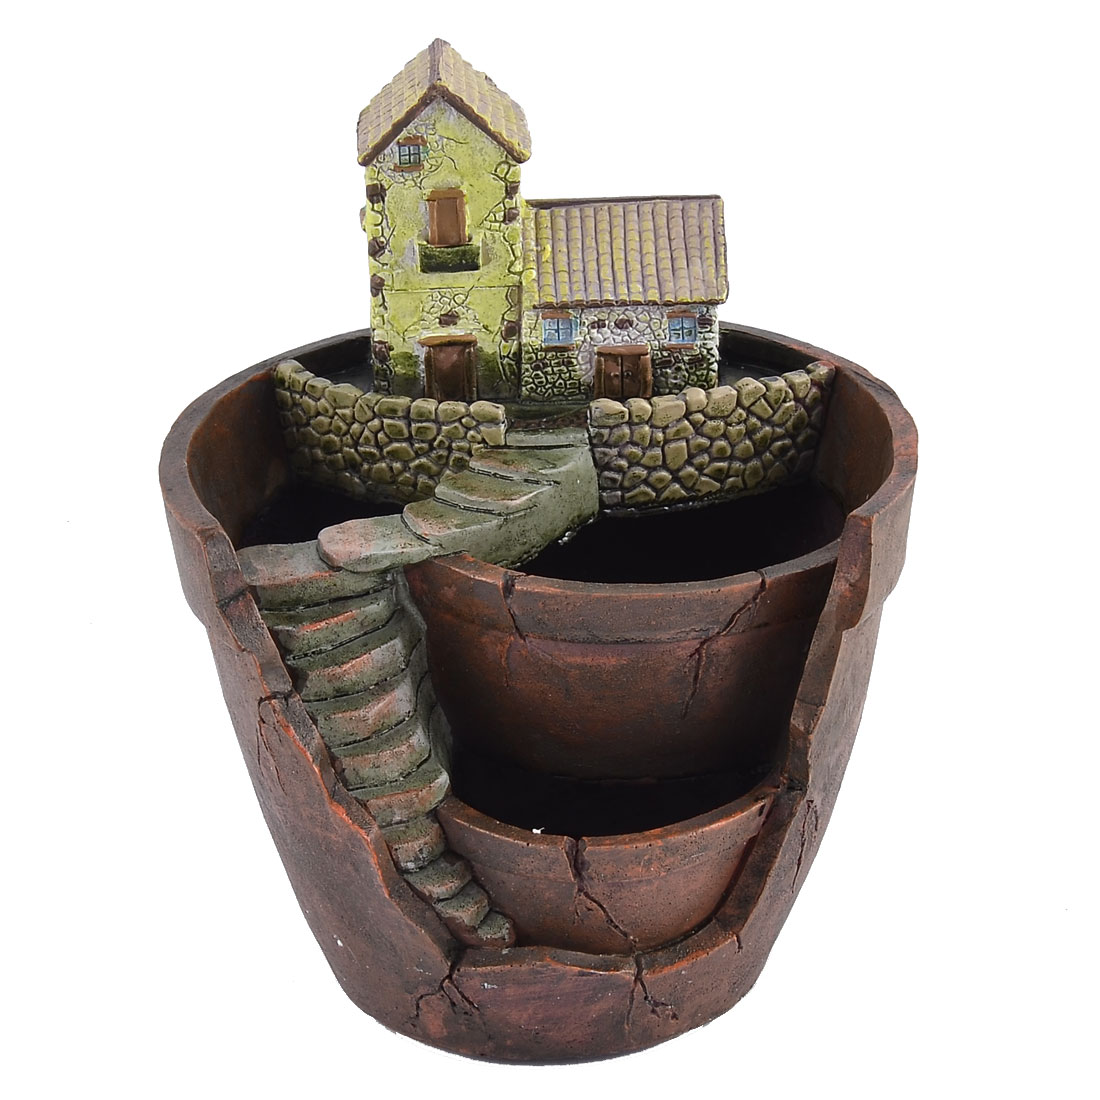 Unique Bargains Home Garden Office Resin House Shaped Aloes Cactus Plant Flower Pot Brown... by